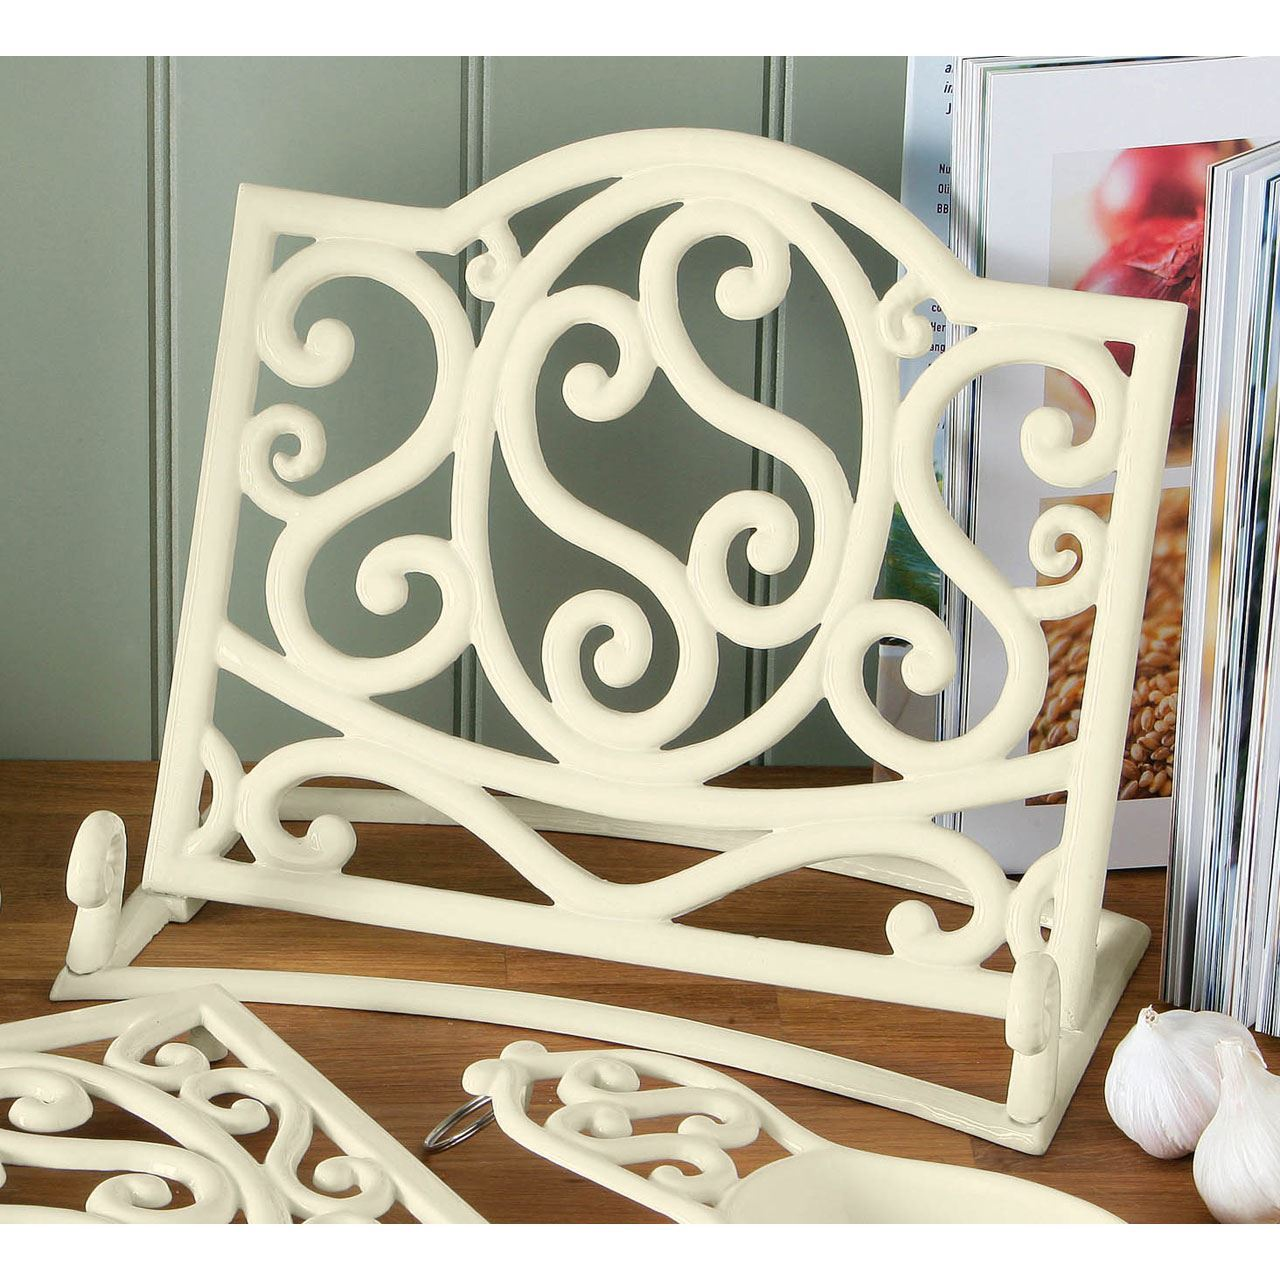 cookbook stand recipe book holder cast iron ideal for your kitchen - Recipe Book Holder